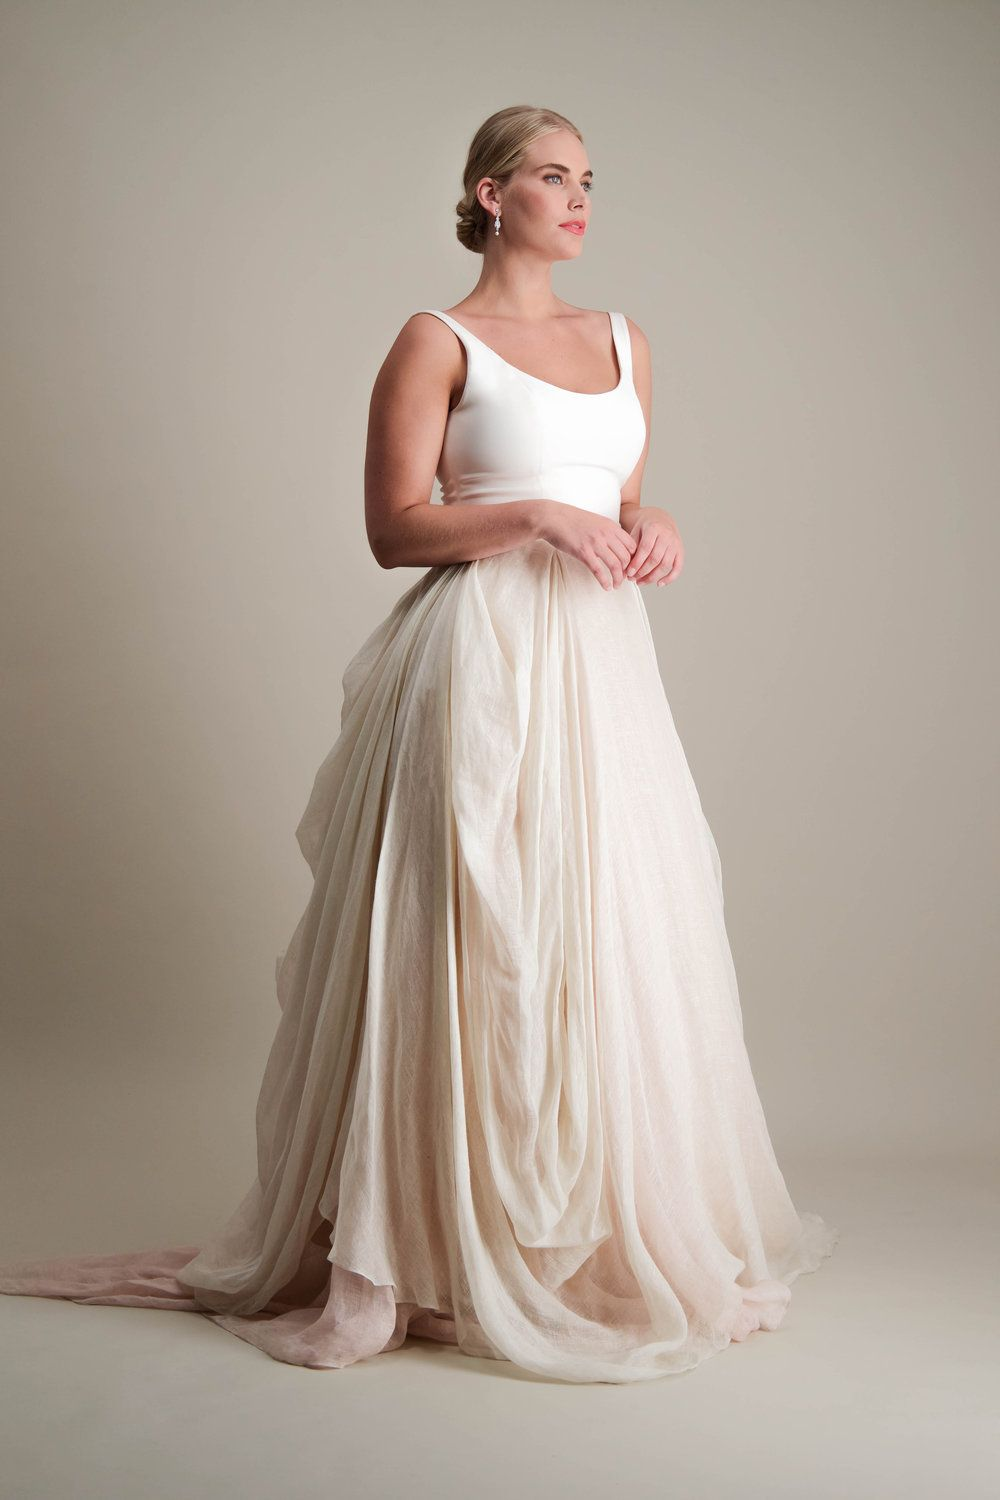 Kensington Skirt Draped Linen Ball Gown Wedding Skirt Paired With Scoop Neck 100 Silk 4ply Crep Tank Top Wedding Dress Scoop Wedding Dress Linen Wedding Dress